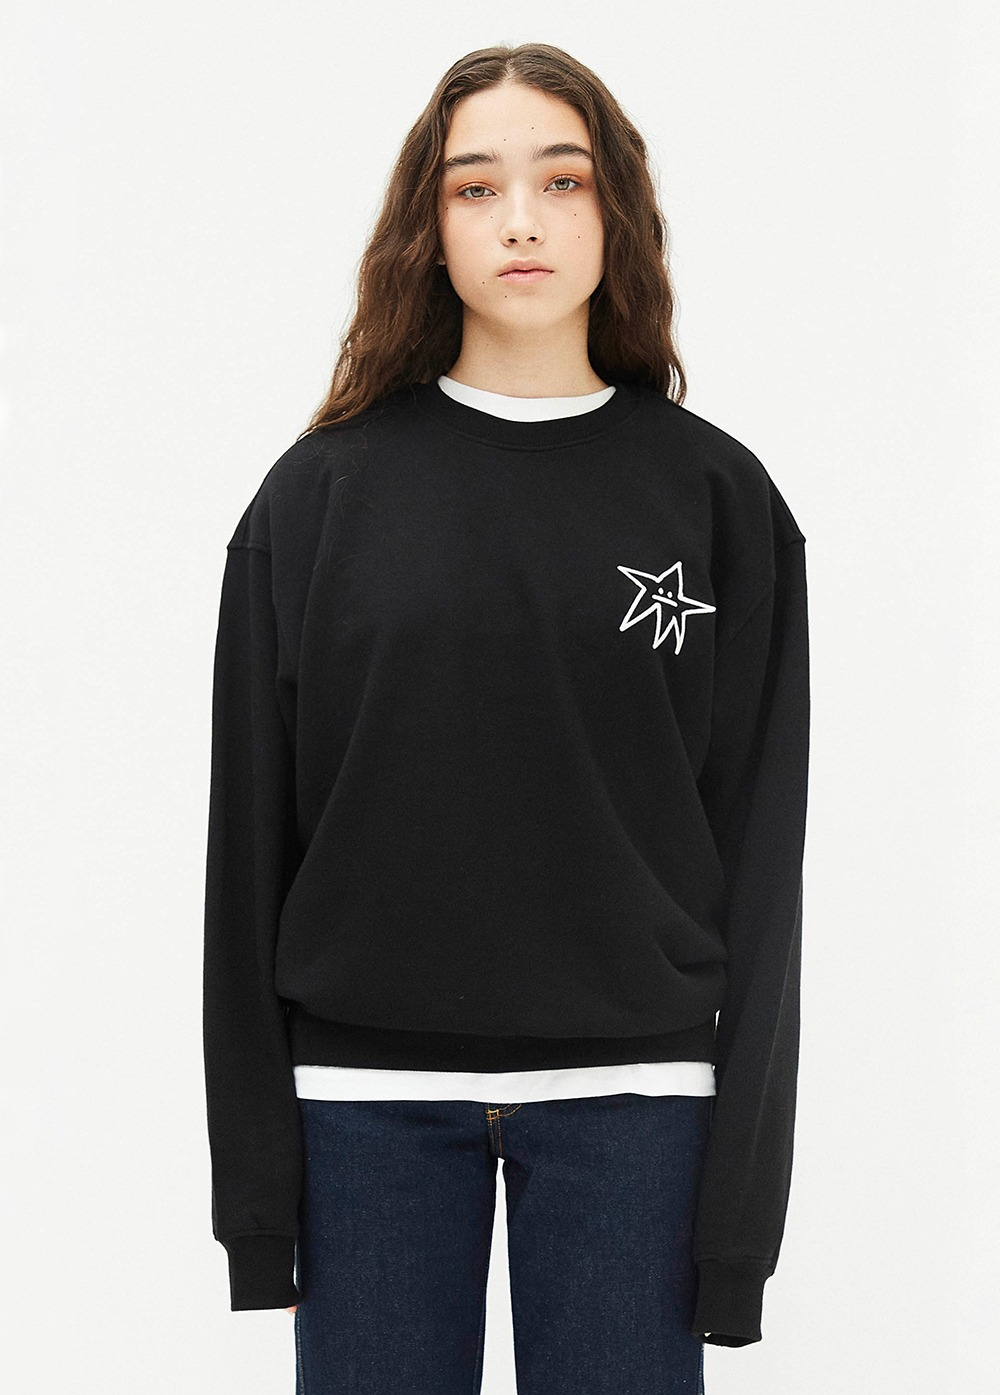 KANCO STAR SWEATSHIRT black